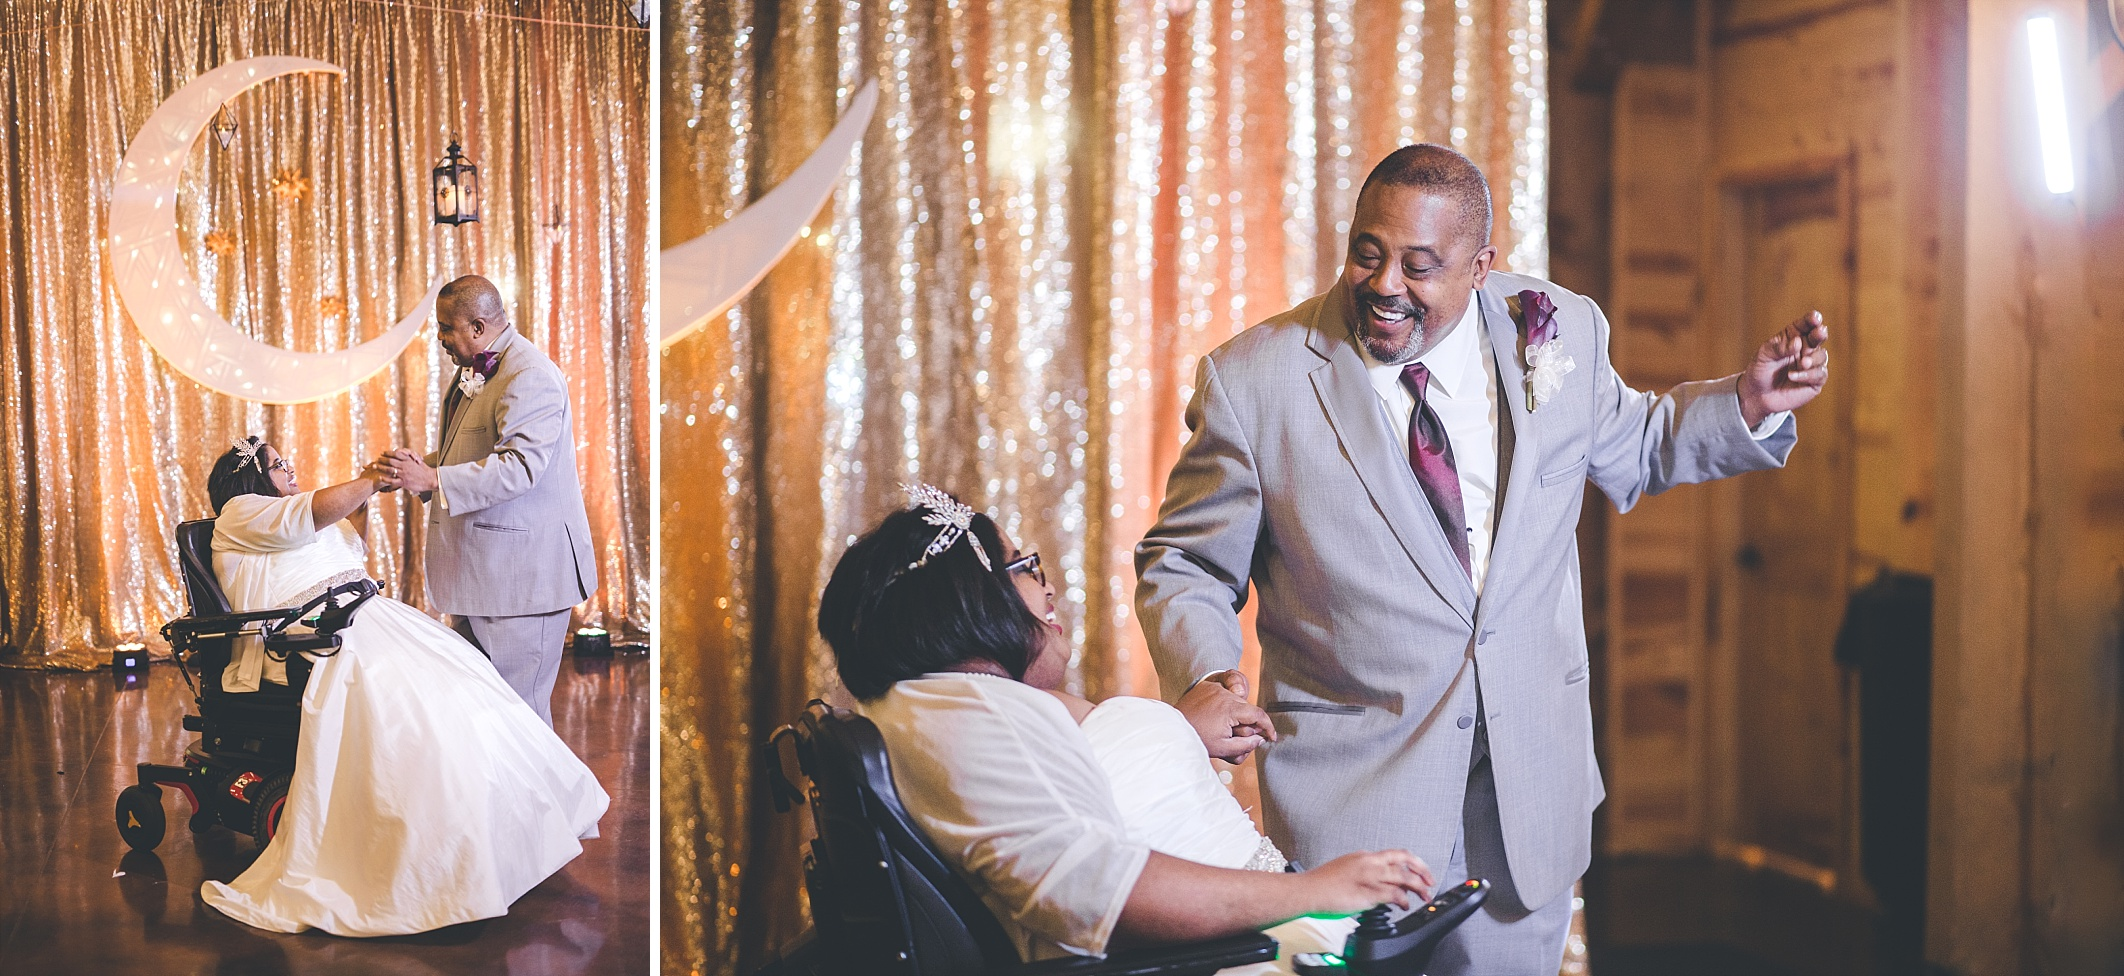 wedding-wheelchair-photographer-dayton_0026.jpg